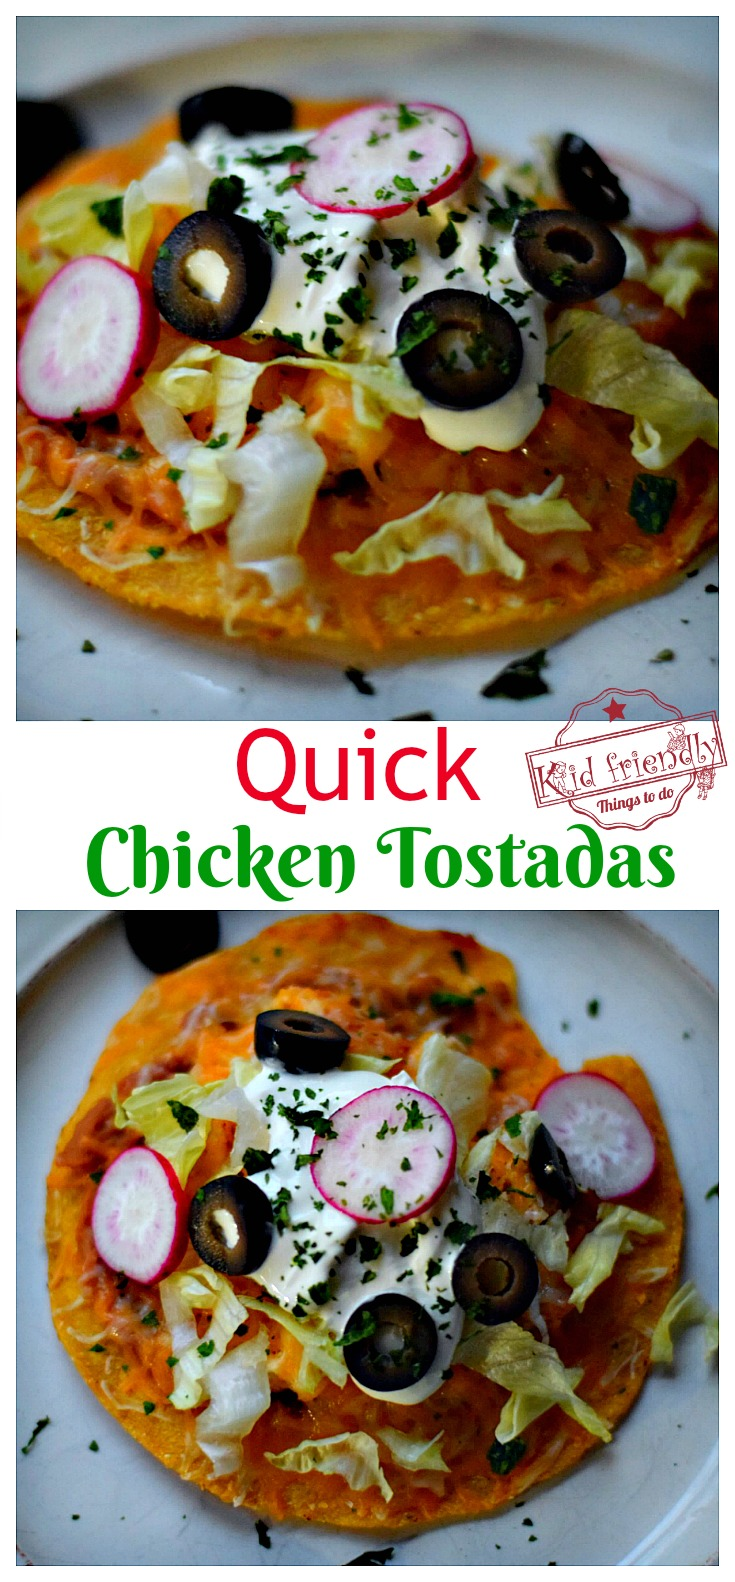 Quick Chicken Tostadas - An Easy Mexican Food Recipe